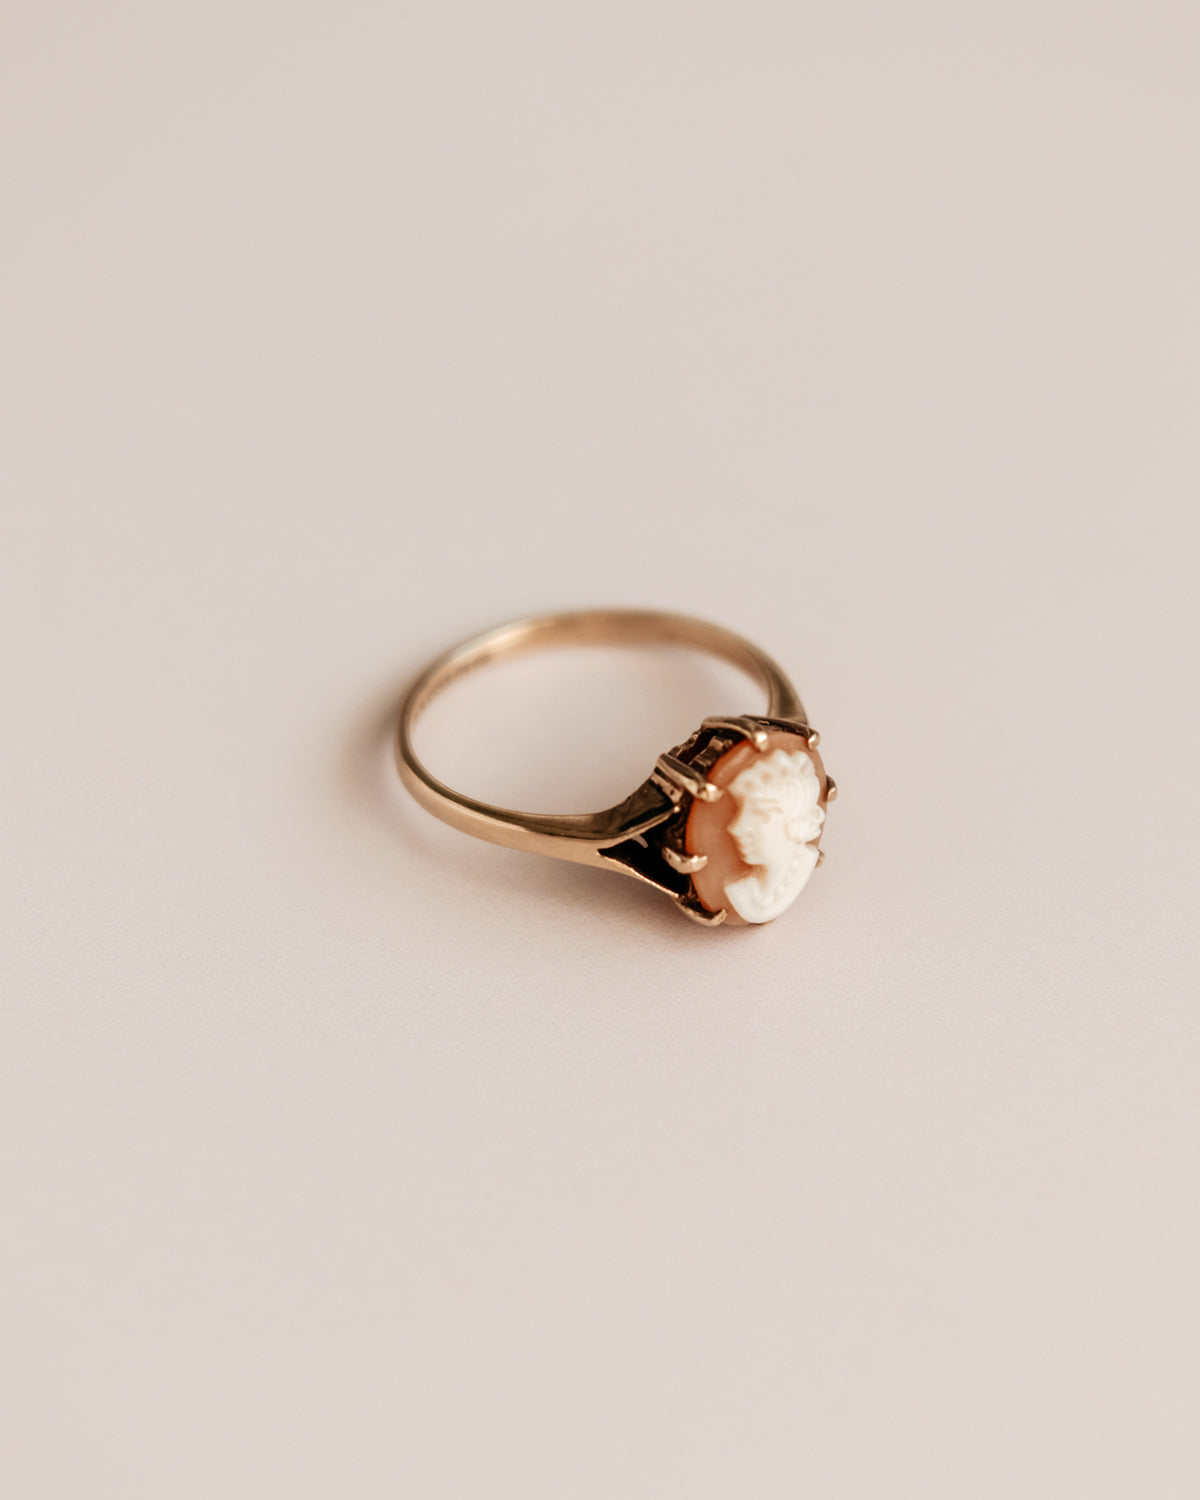 Cora Exclusive Vintage 9ct Gold Cameo Ring